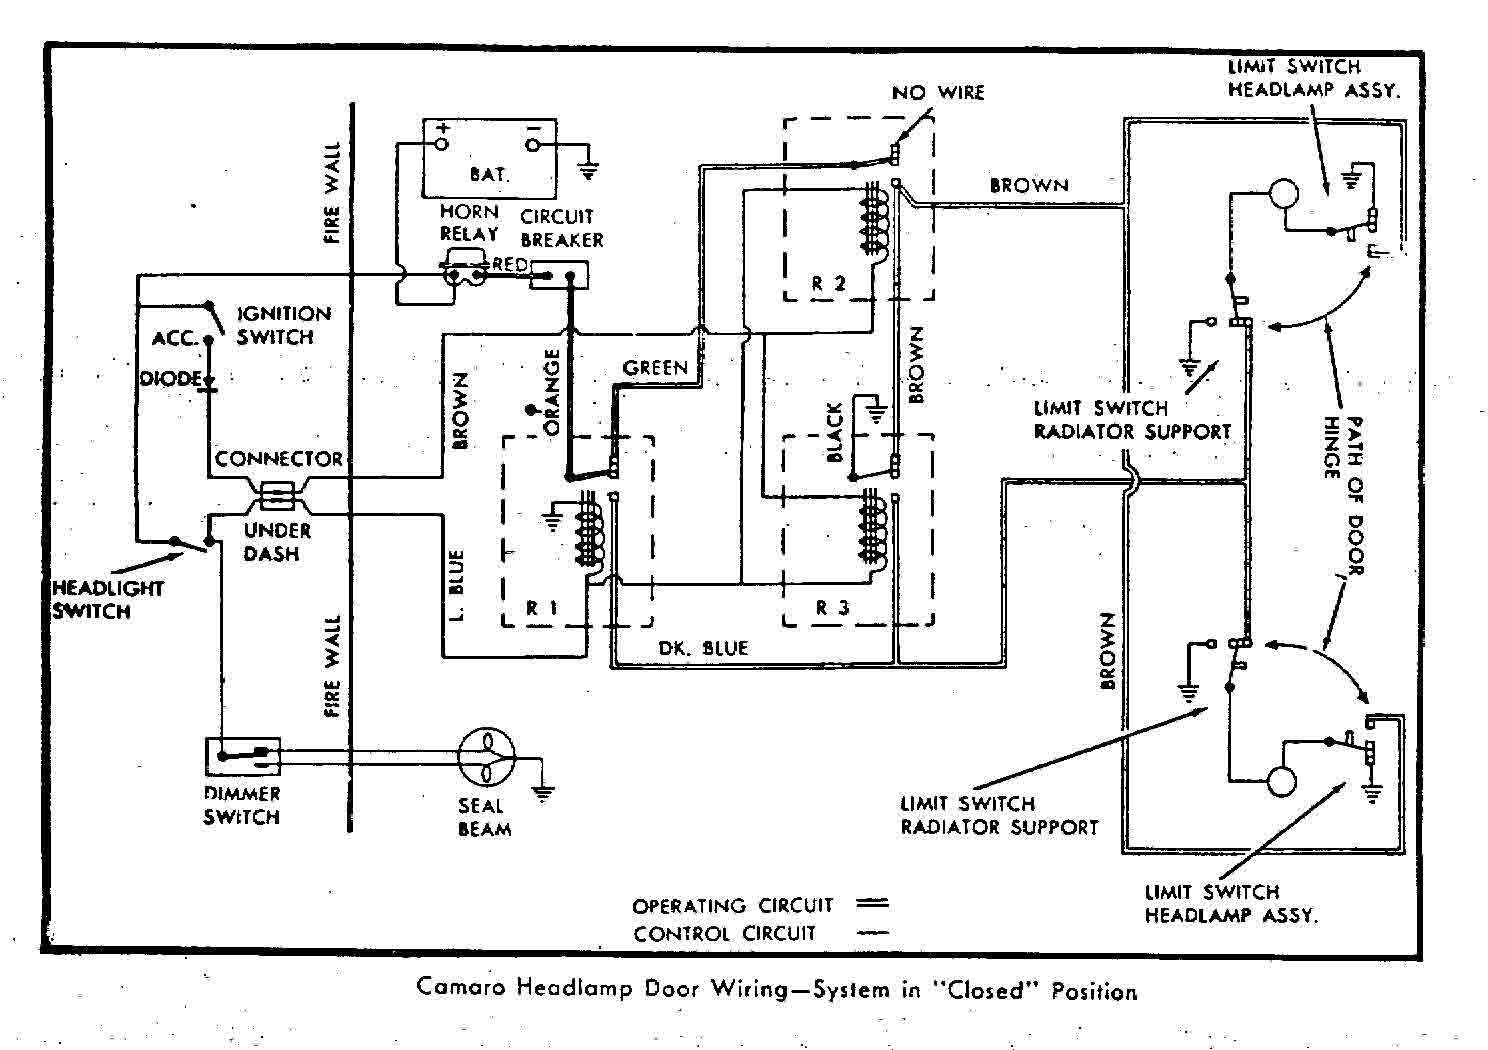 67 camaro wiring diagram example electrical wiring diagram u2022 rh cranejapan co  1968 chevrolet camaro wiring diagram